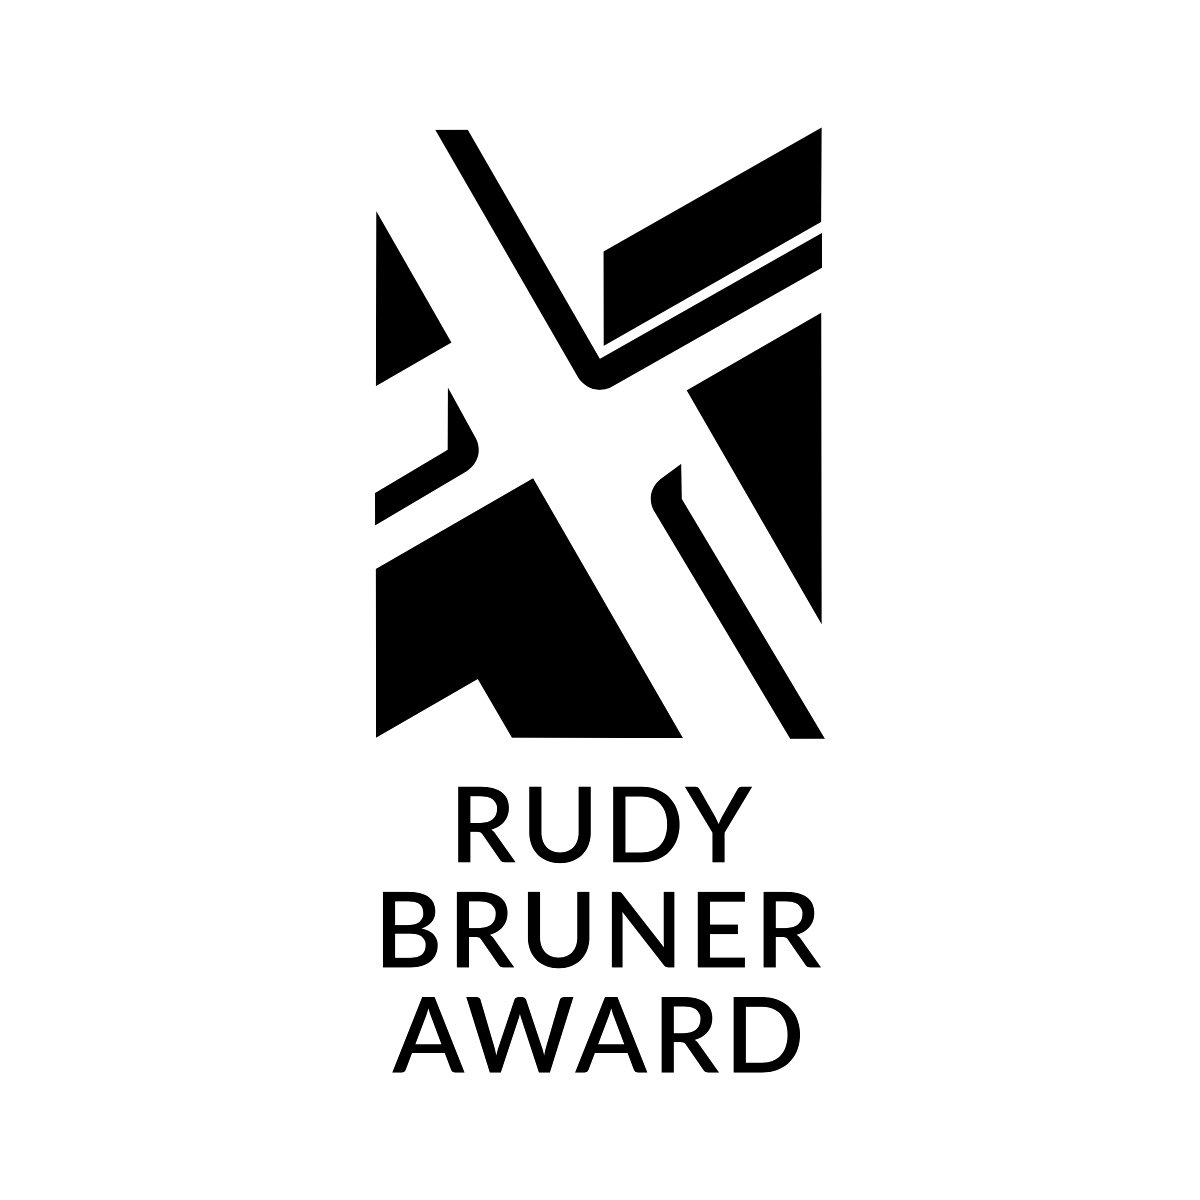 2019 Rudy Bruner Award for Urban Excellence - Call for Entries